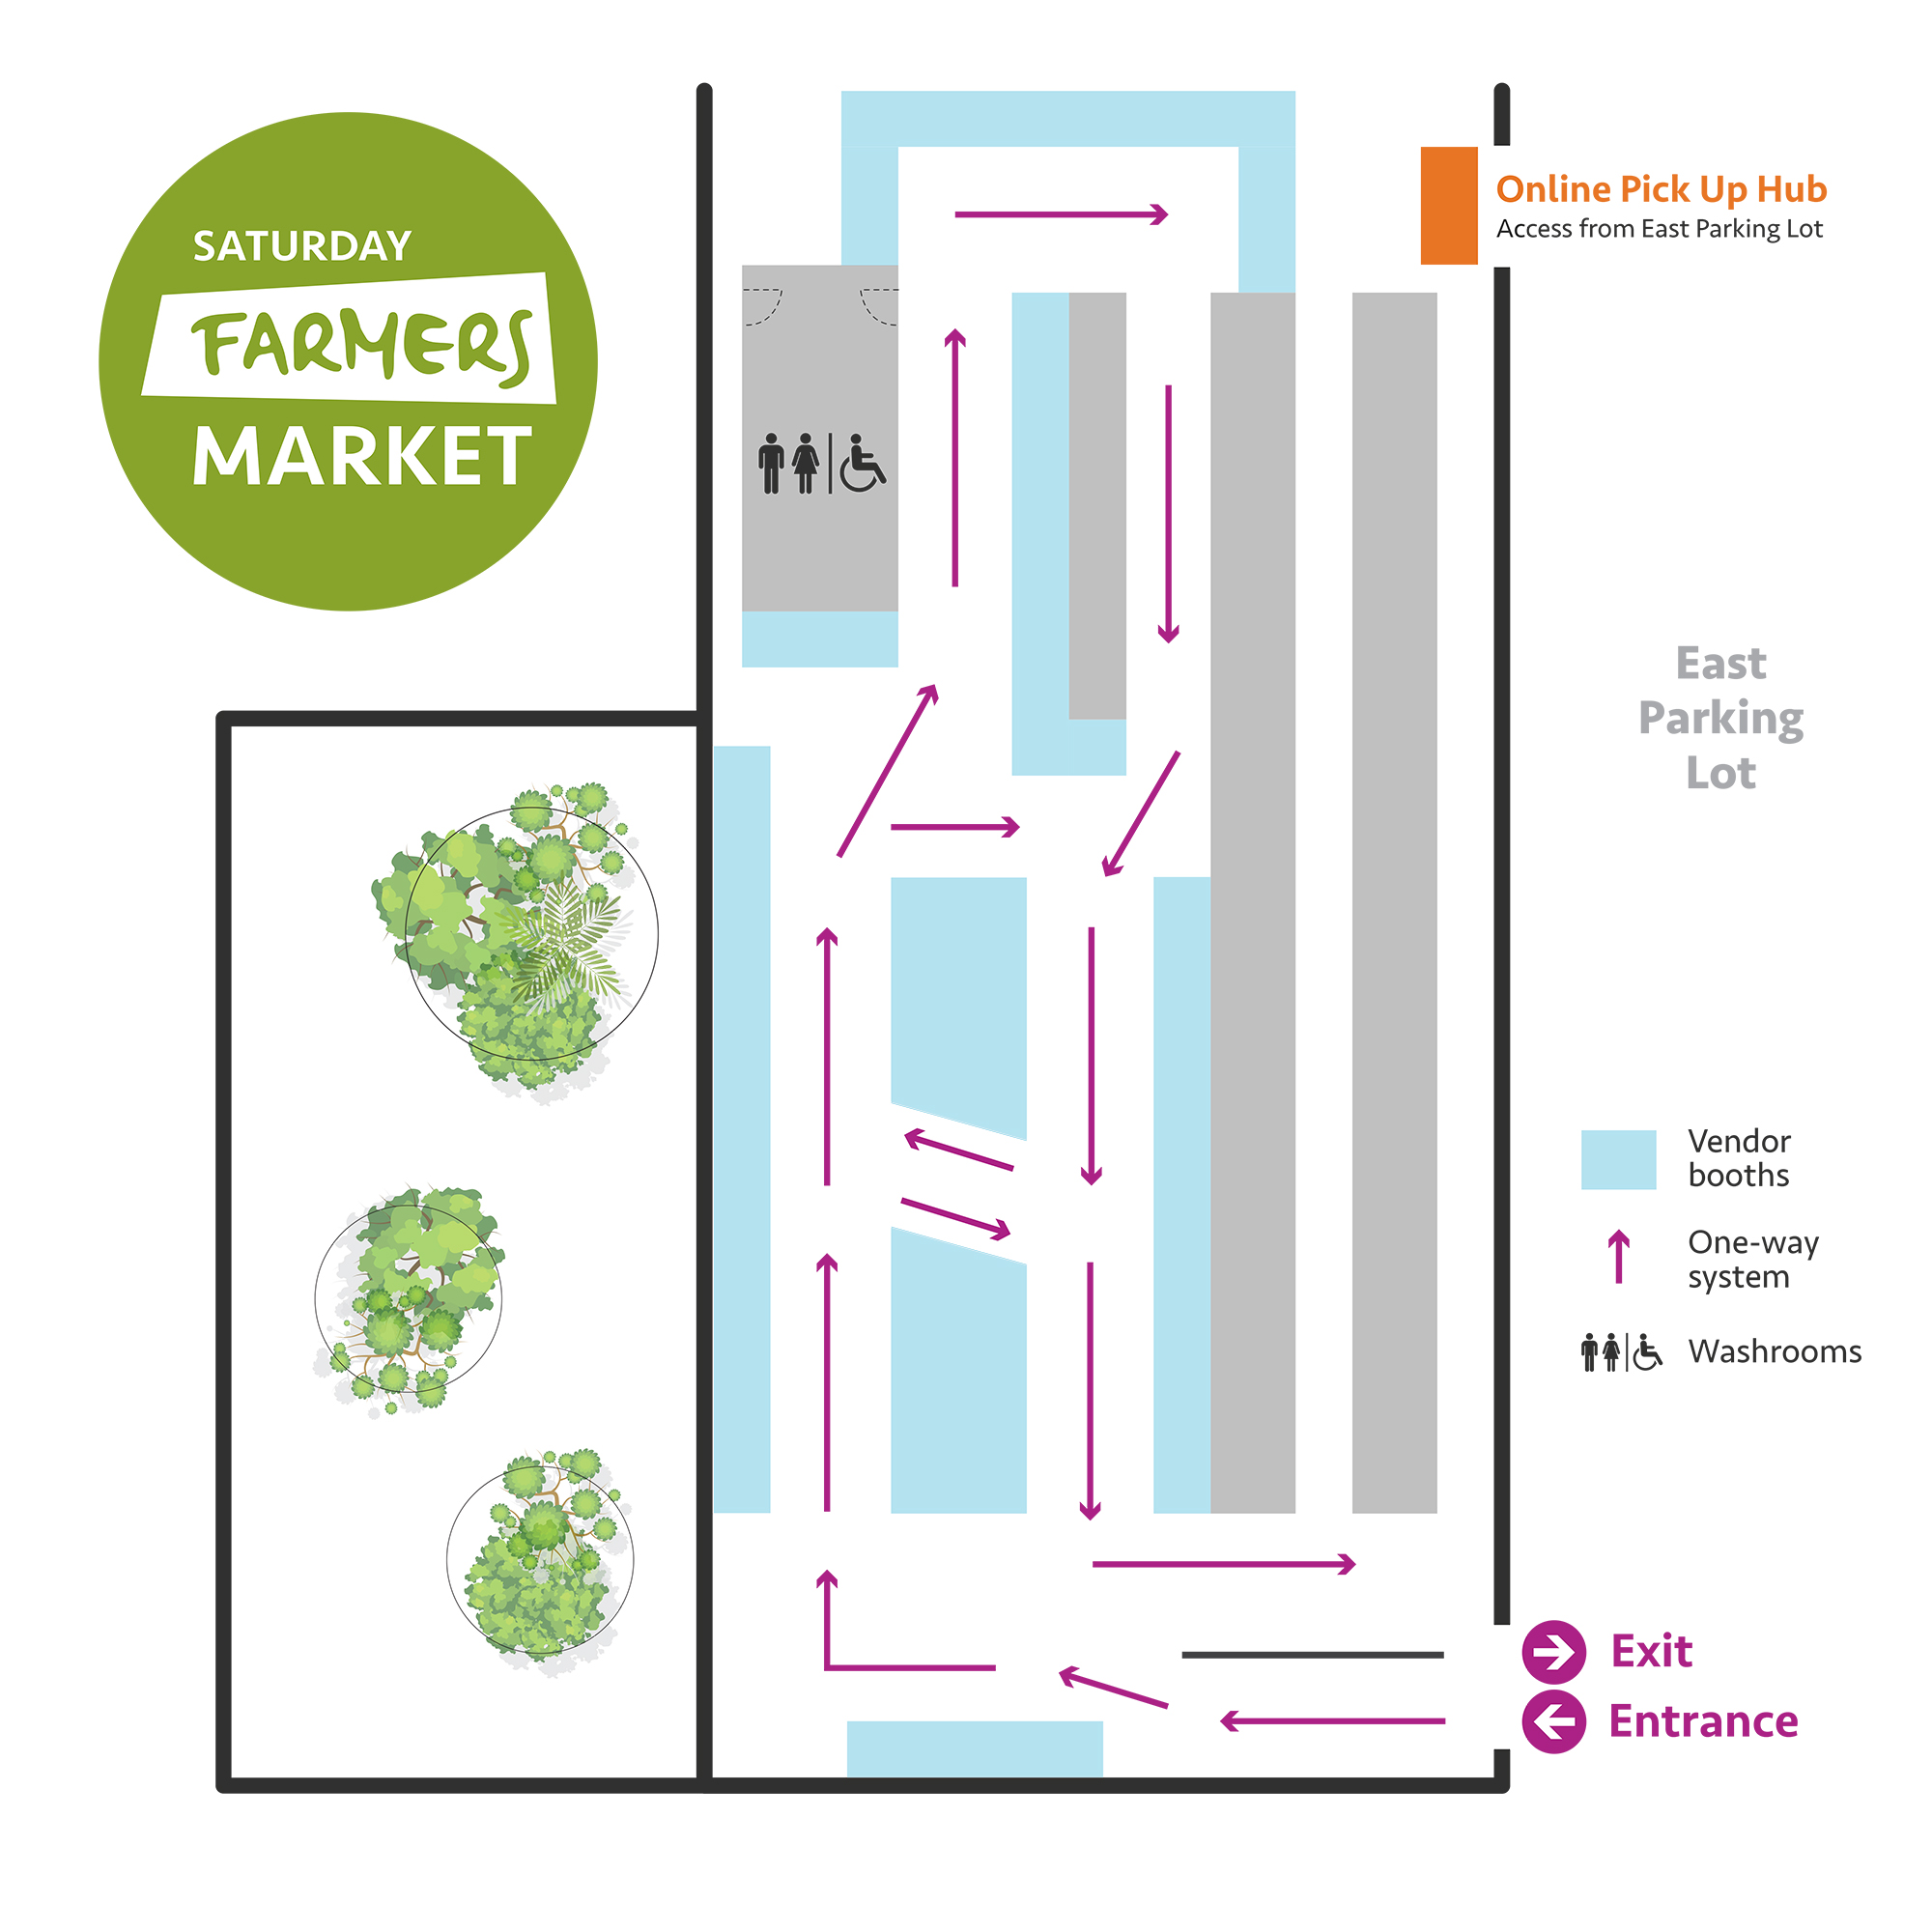 Market Map. Enter and Exit through TD Future Cities Centre in East Parking Lot